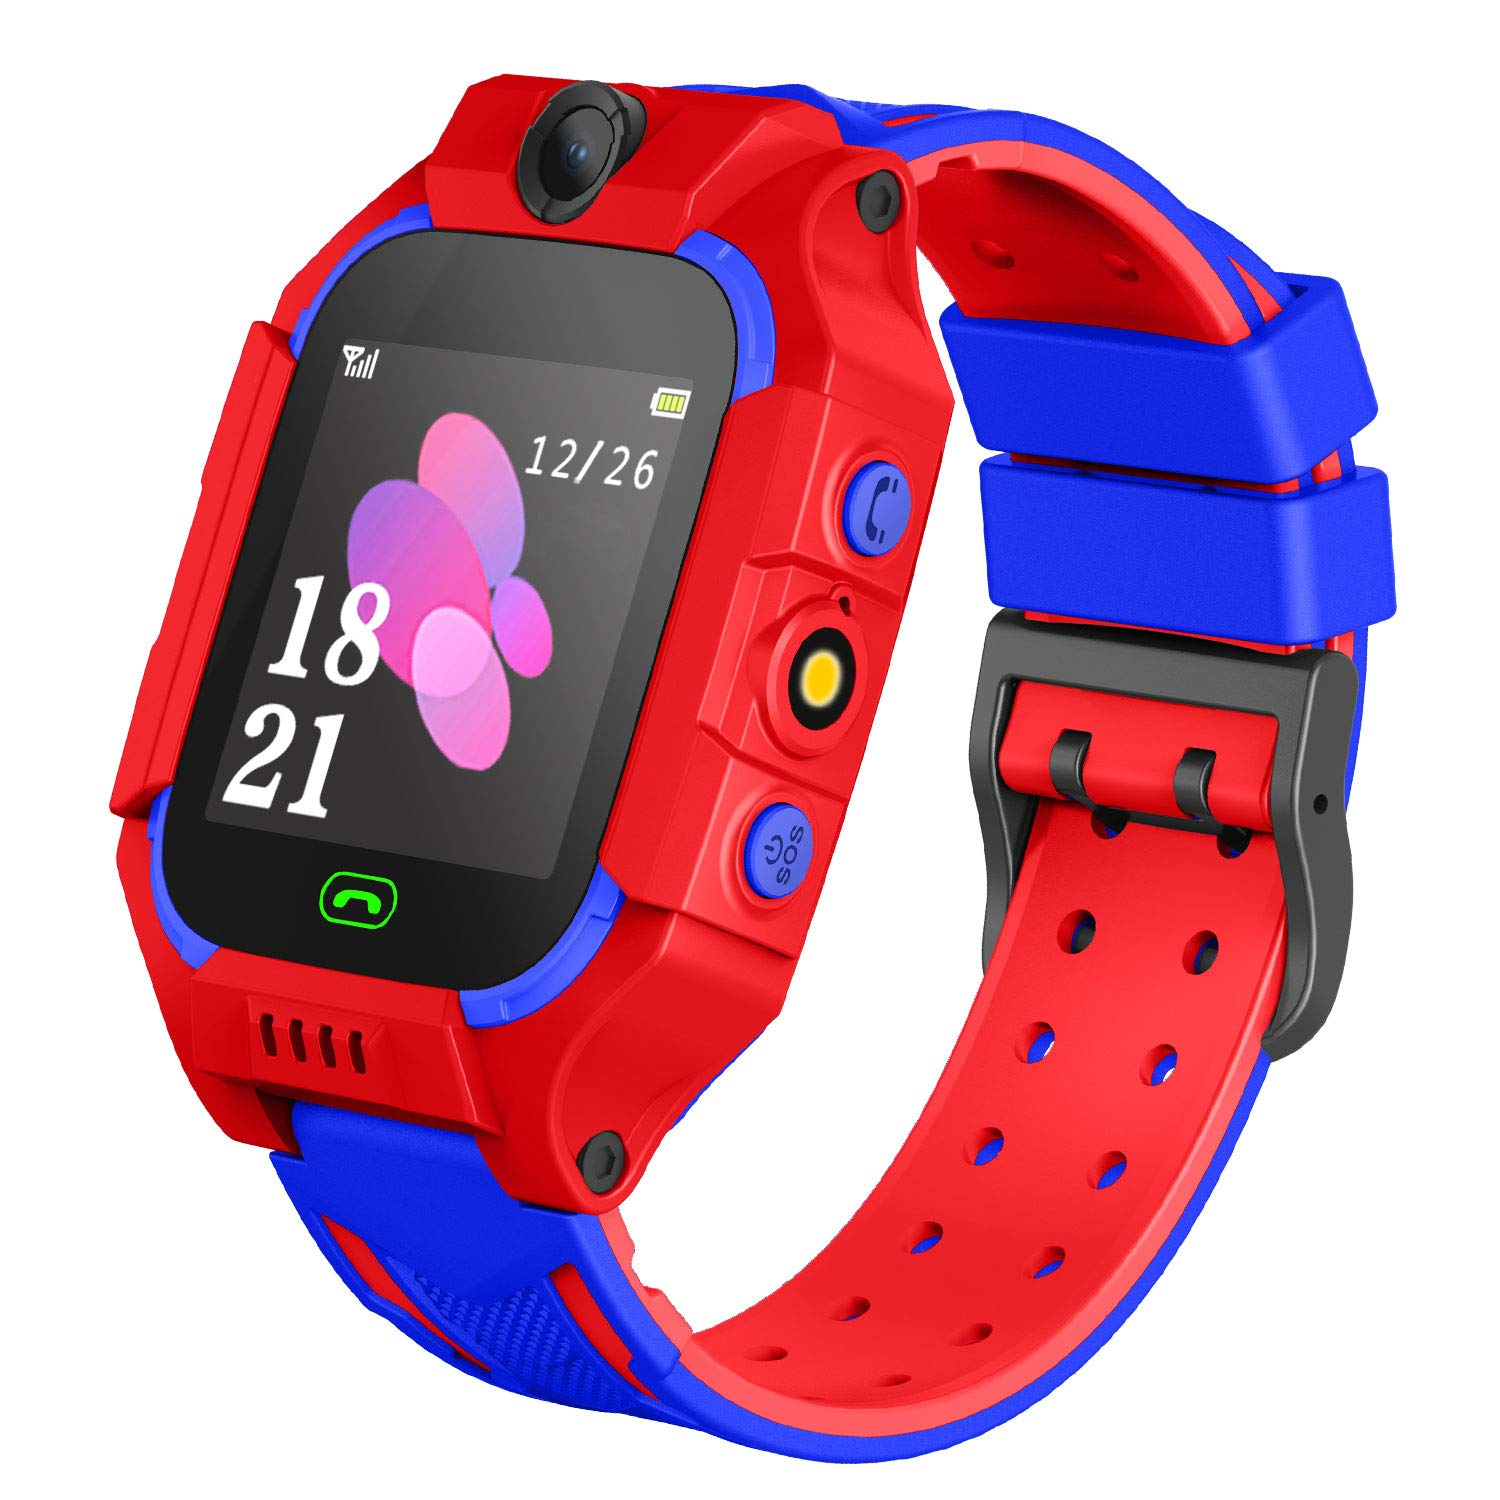 Karaforna Kids Smartwatch Phone Boys Girls – Game Smart Watch with Call Games Camera Alarm 1.54 inch Touch Screen Wristwatch Cellphone Watch for ...